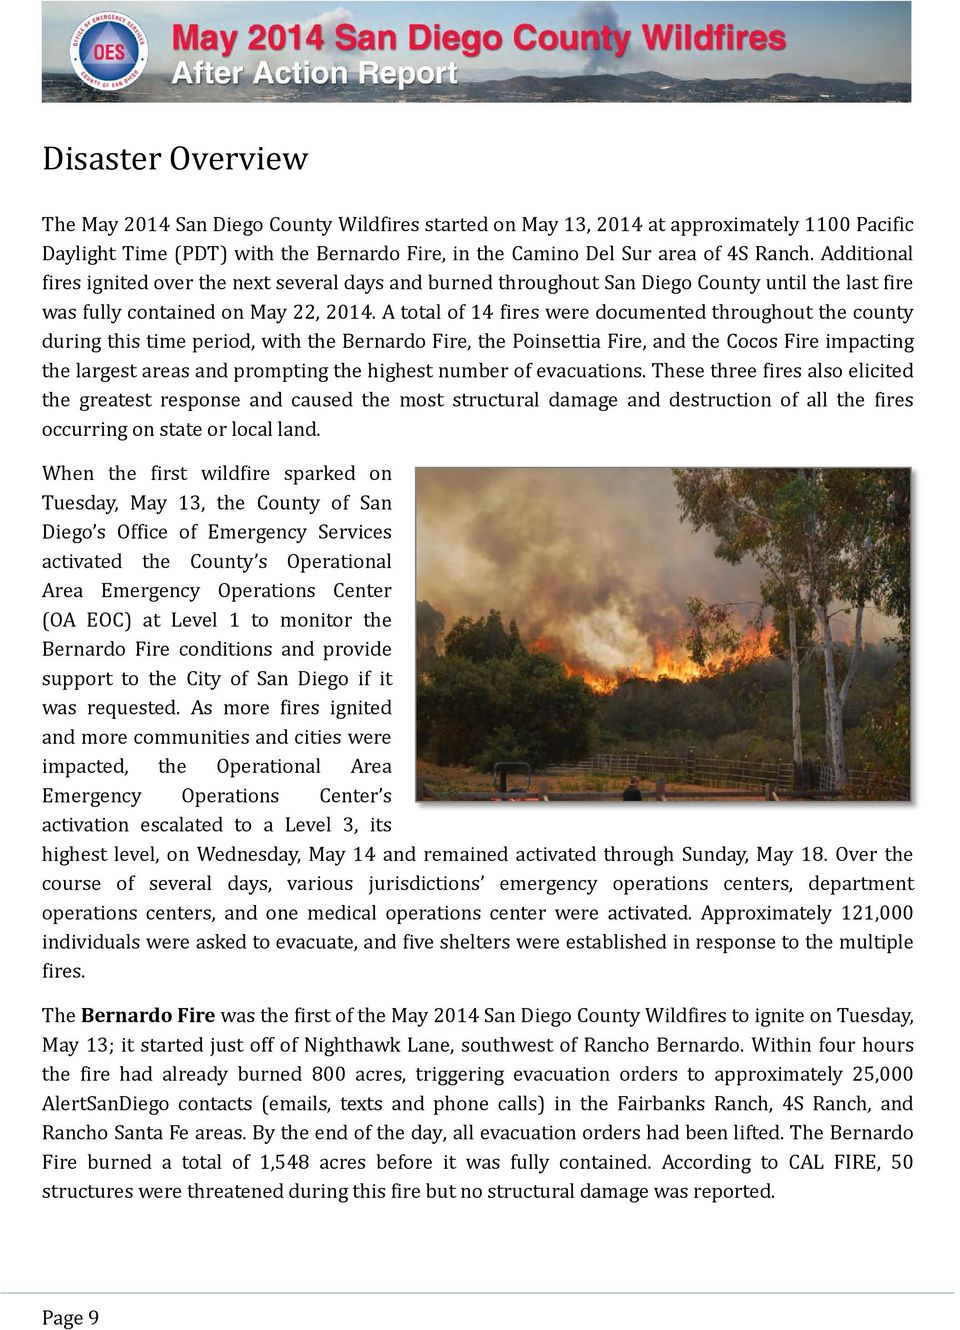 A total of 14 fires were documented throughout the county during this time period, with the Bernardo Fire, the Poinsettia Fire, and the Cocos Fire impacting the largest areas and prompting the